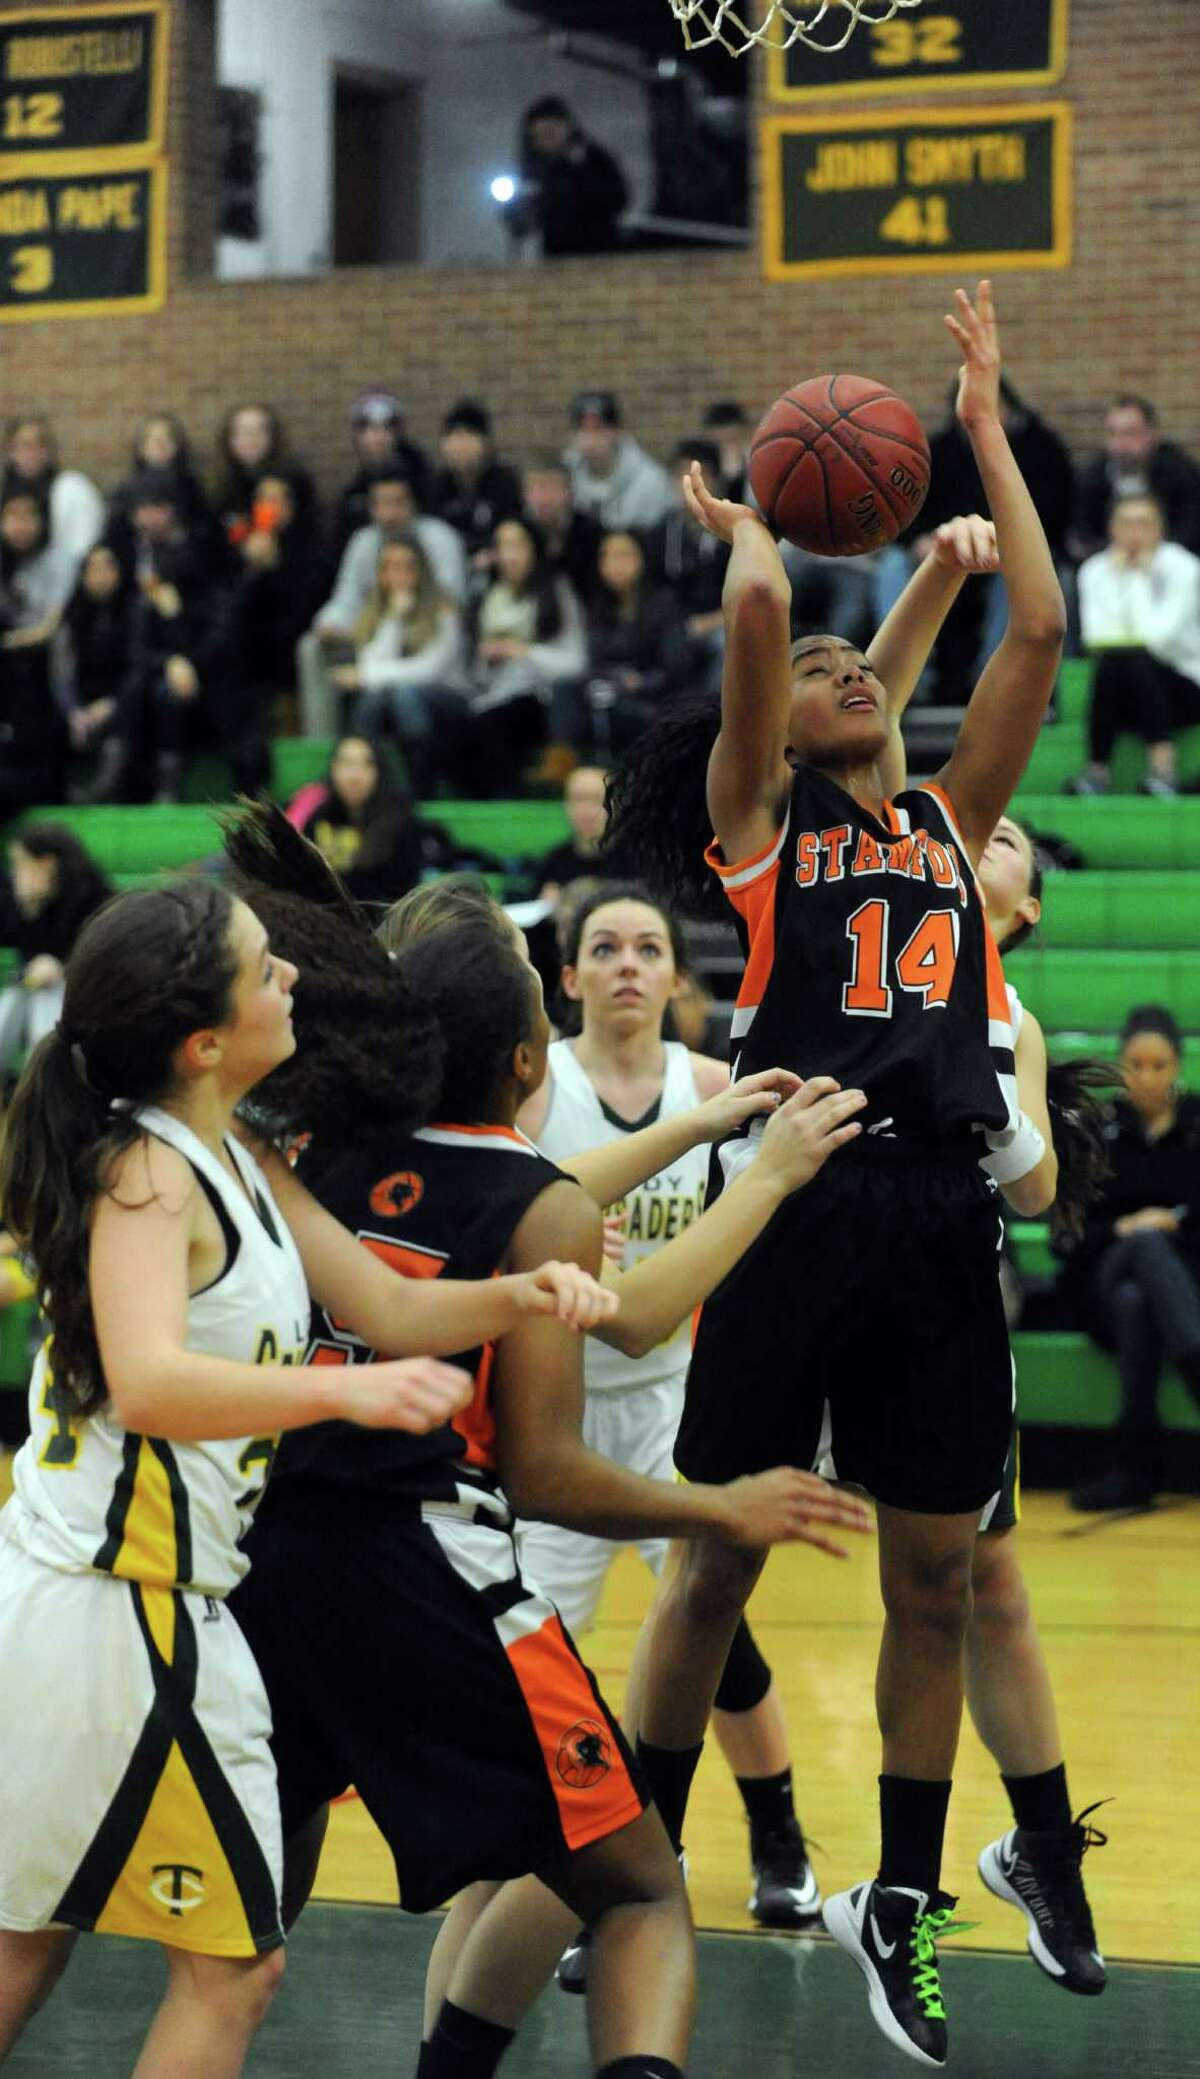 Stamford's Brianna Gordon takes a shot during Friday's girls basketball game at Trinity Catholic High School in Stamford on January 11, 2013.